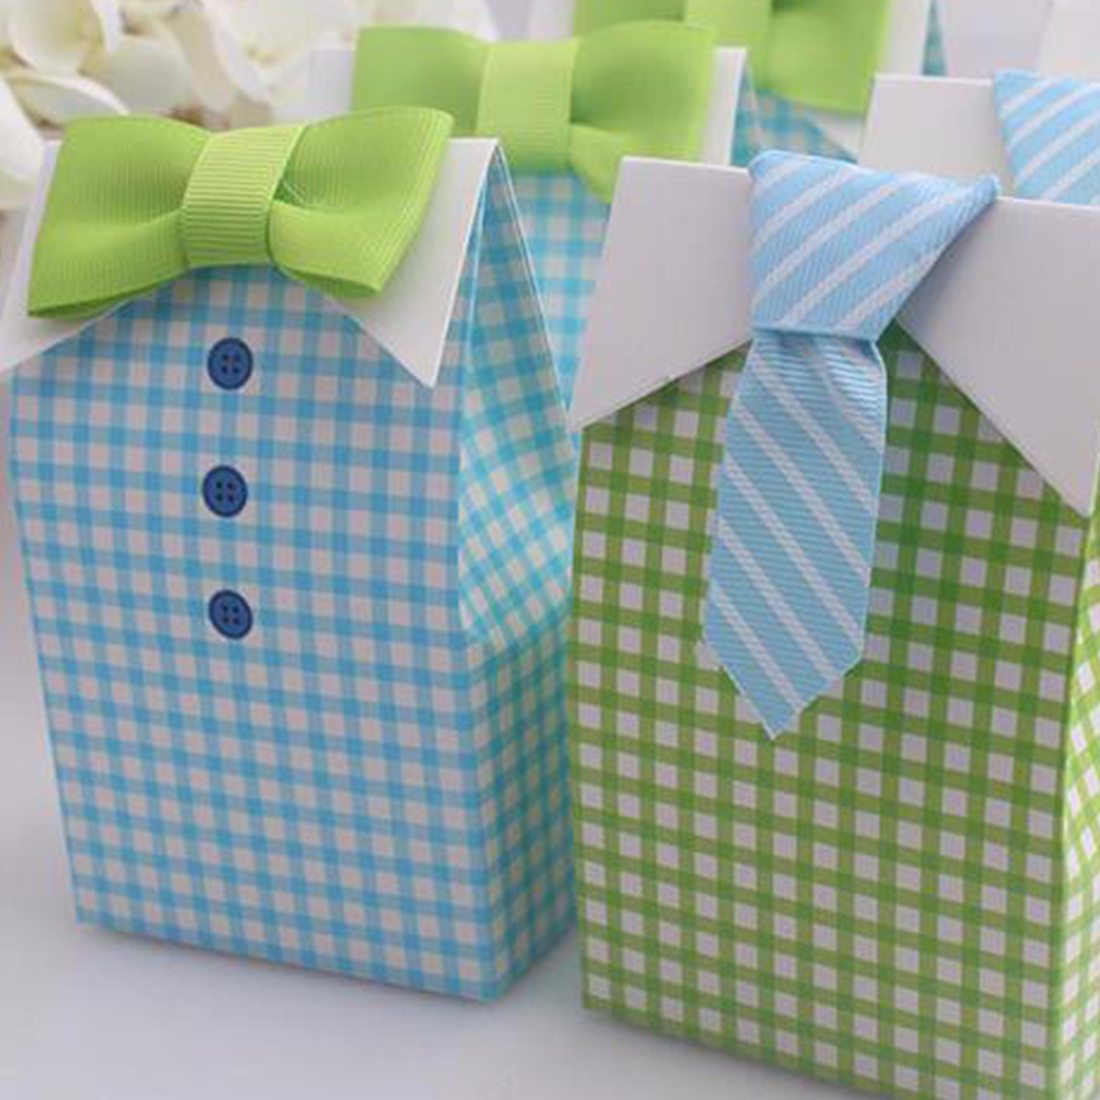 20 Pcs Little Man Blue Green Bow Tie Birthday Boy Baby Shower Favor Candy Treat Bag Wedding Favors Box Gift